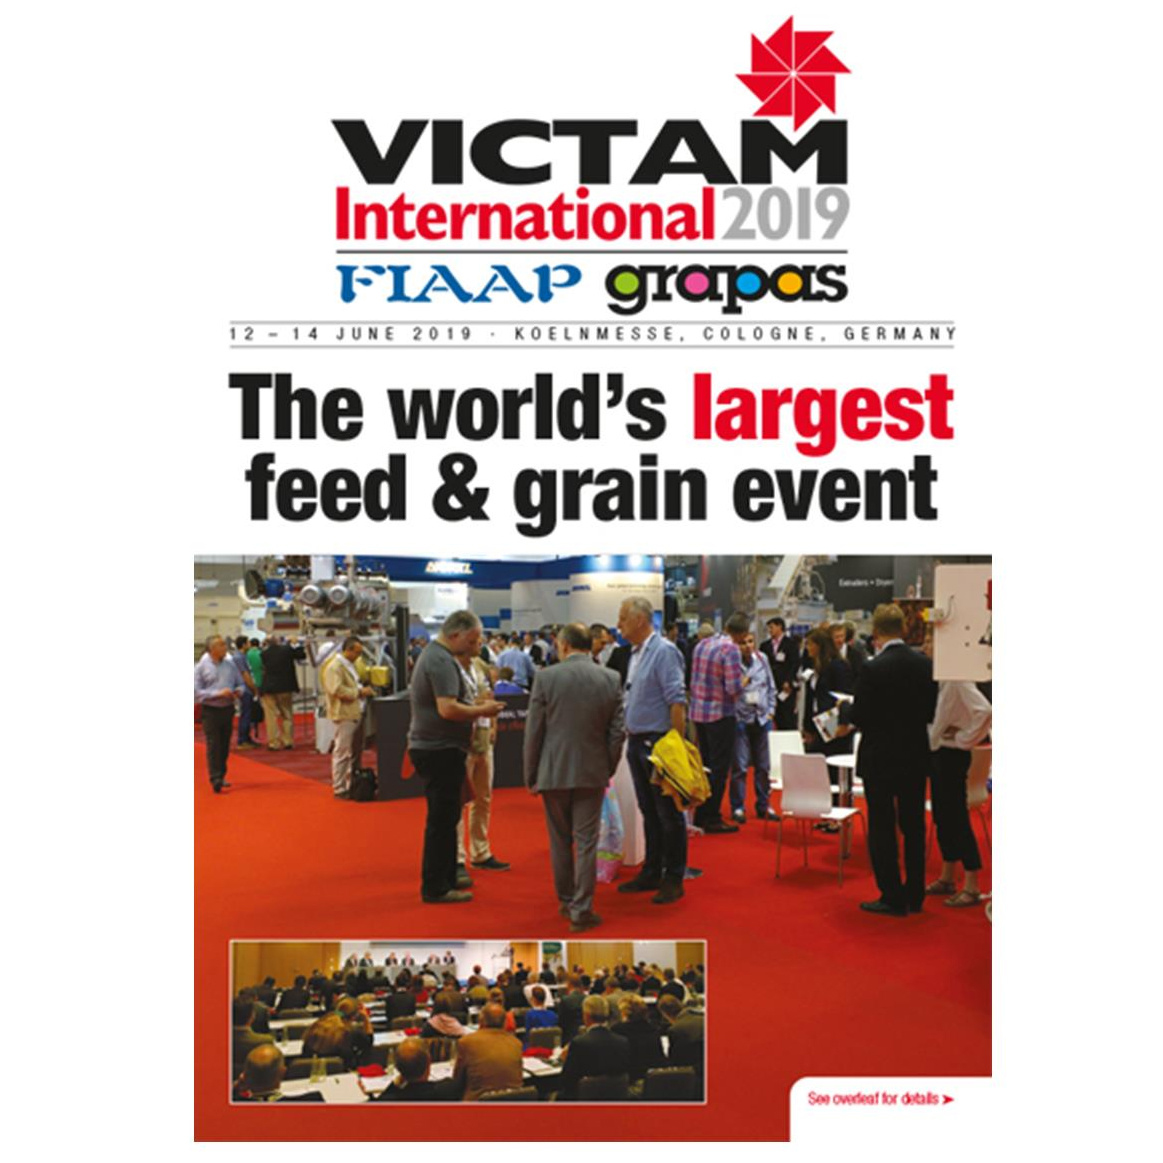 Victam International 2019